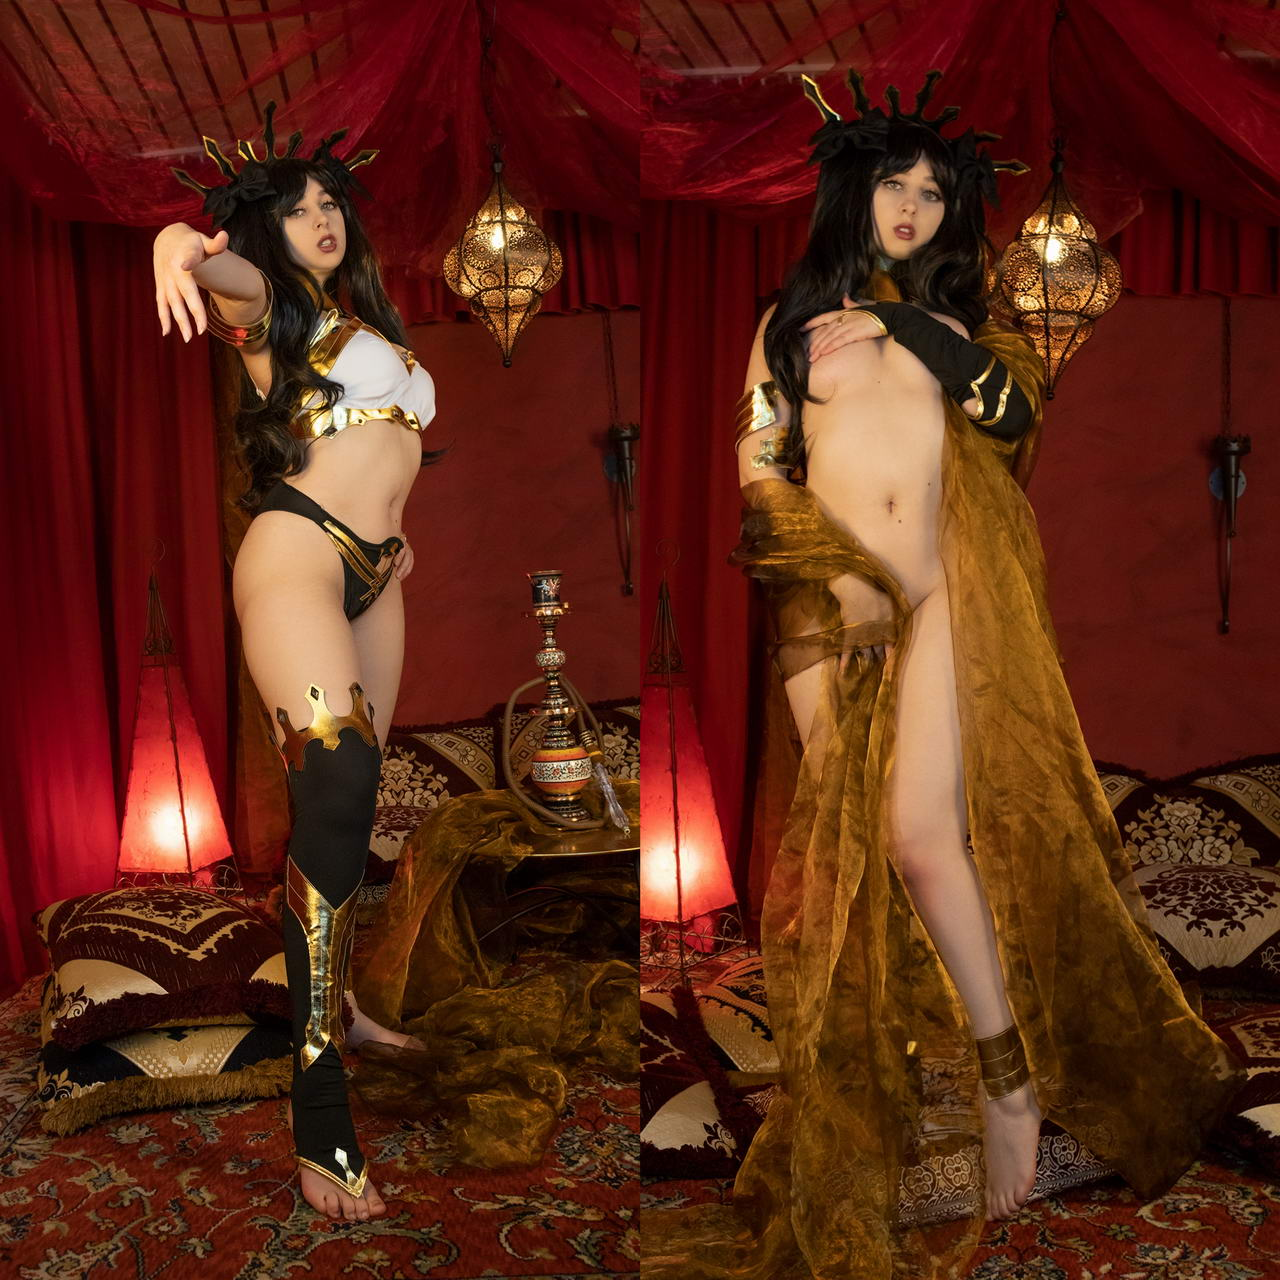 Hot Cosplay Girls Will Outshine Your Mind (44 Photos)